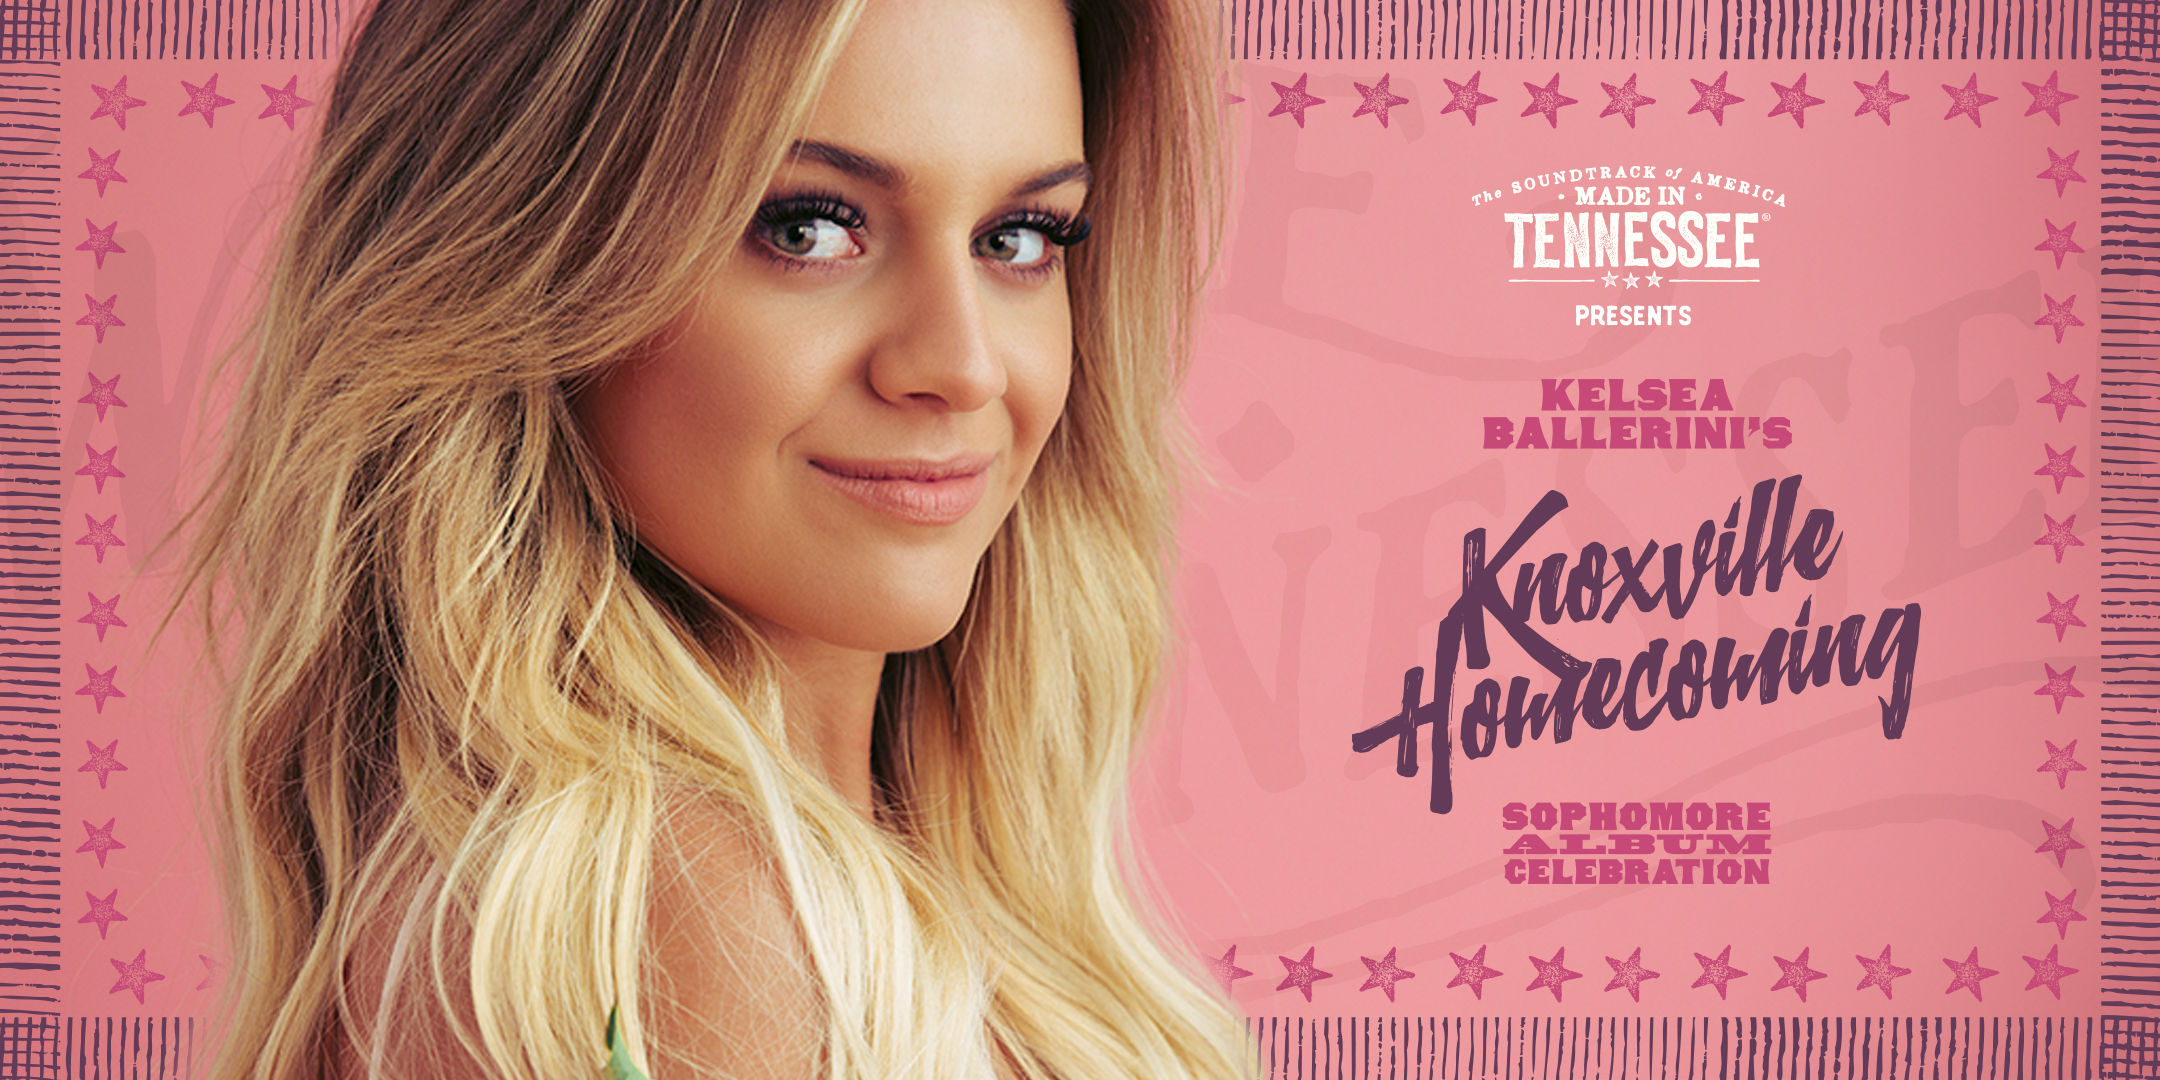 Kelsea Ballerini to host homecoming concert at Central High School, her alma mater, in Knoxville, Tennessee.